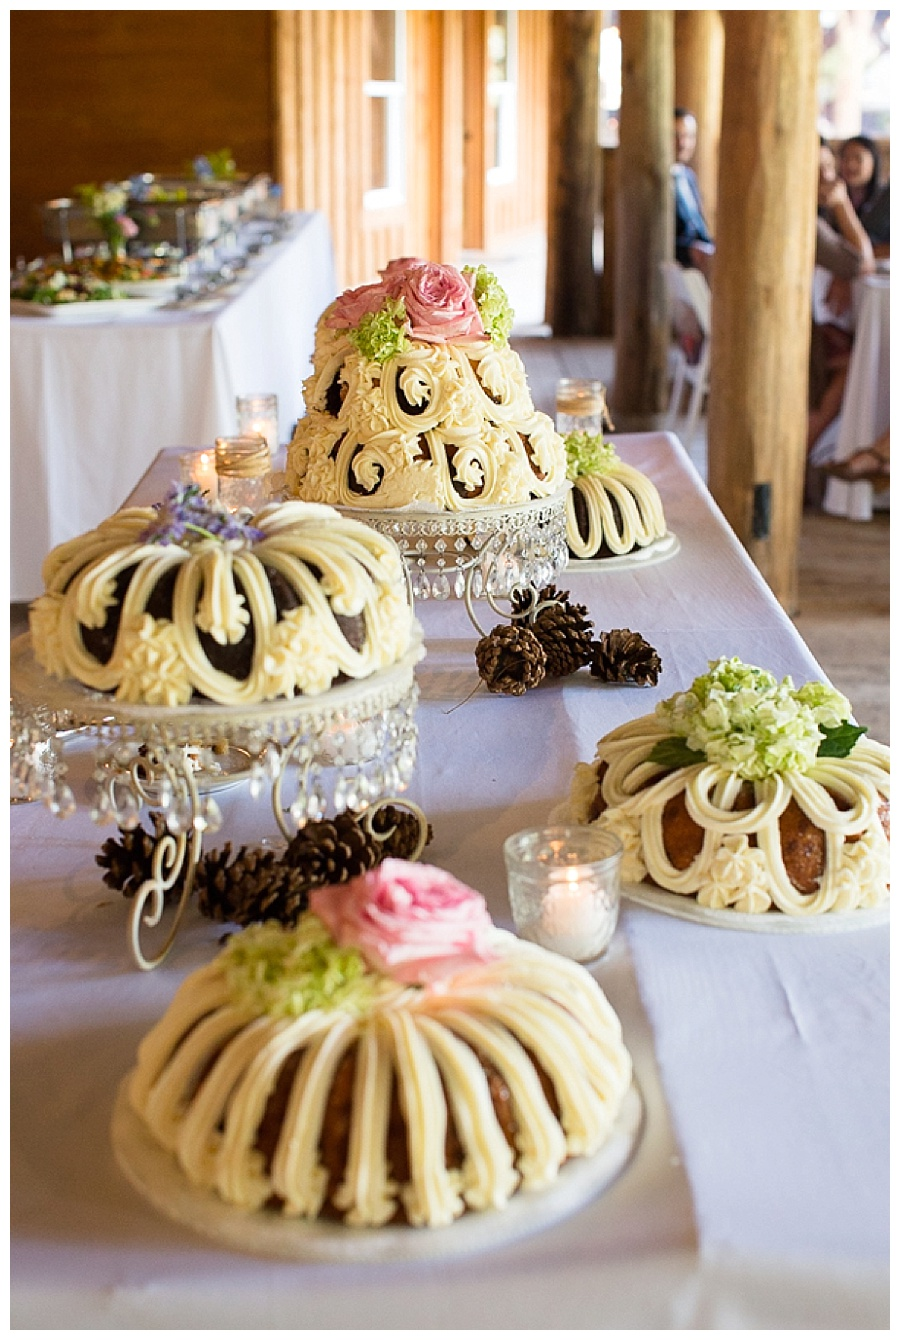 23 Bundt Cake at wedding reception Piney River Ranch